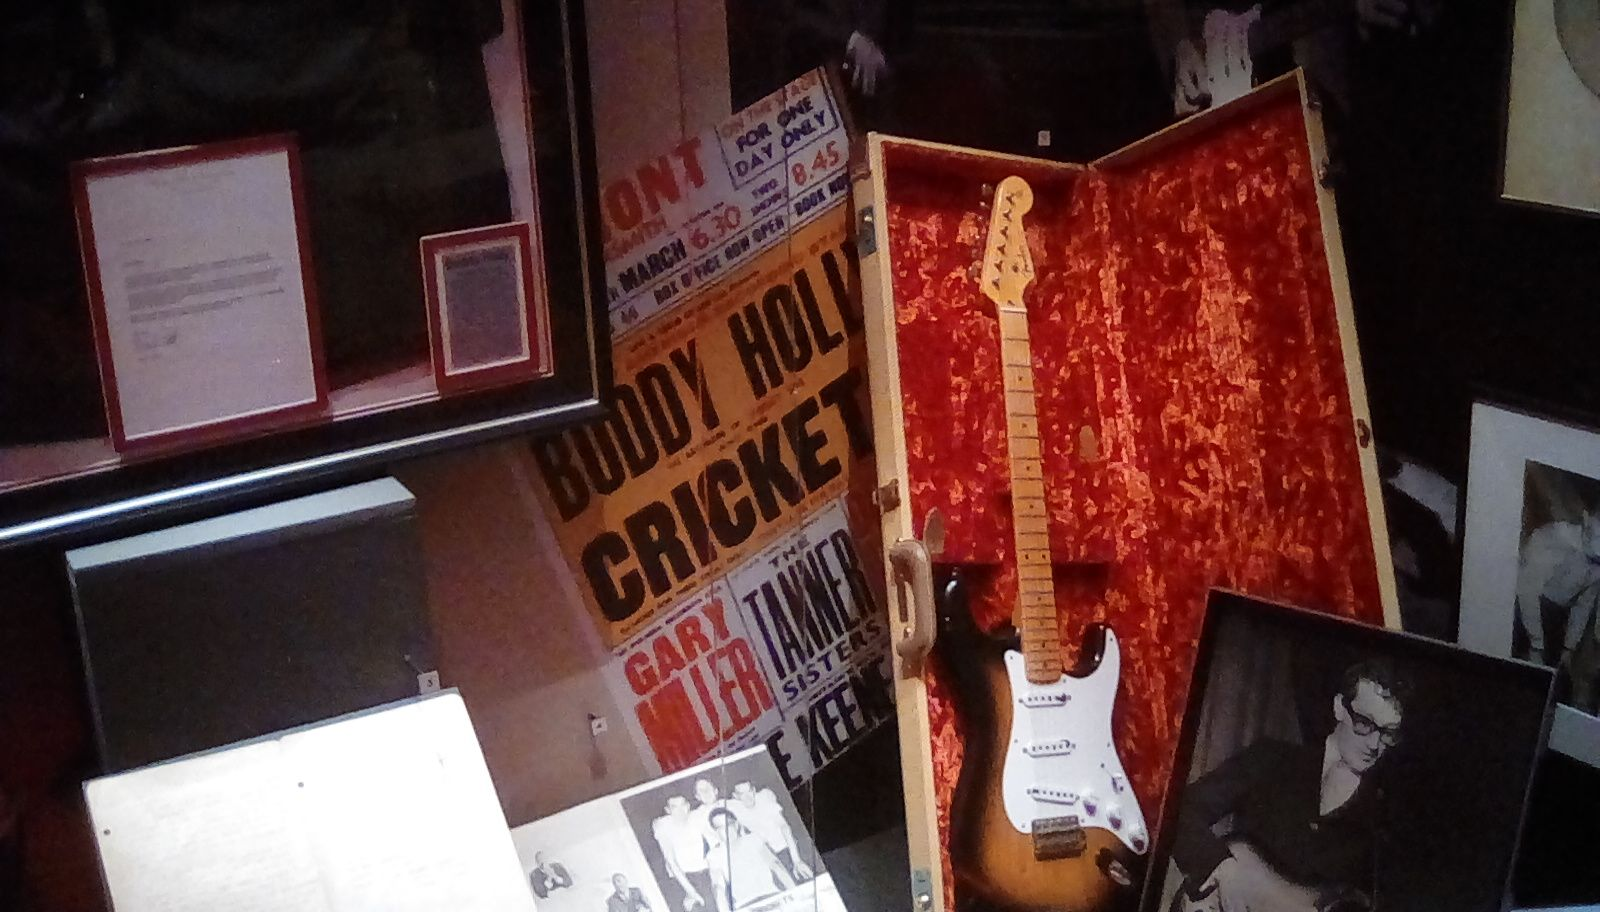 Buddy Holly - British Music Experience Museum, Liverpool